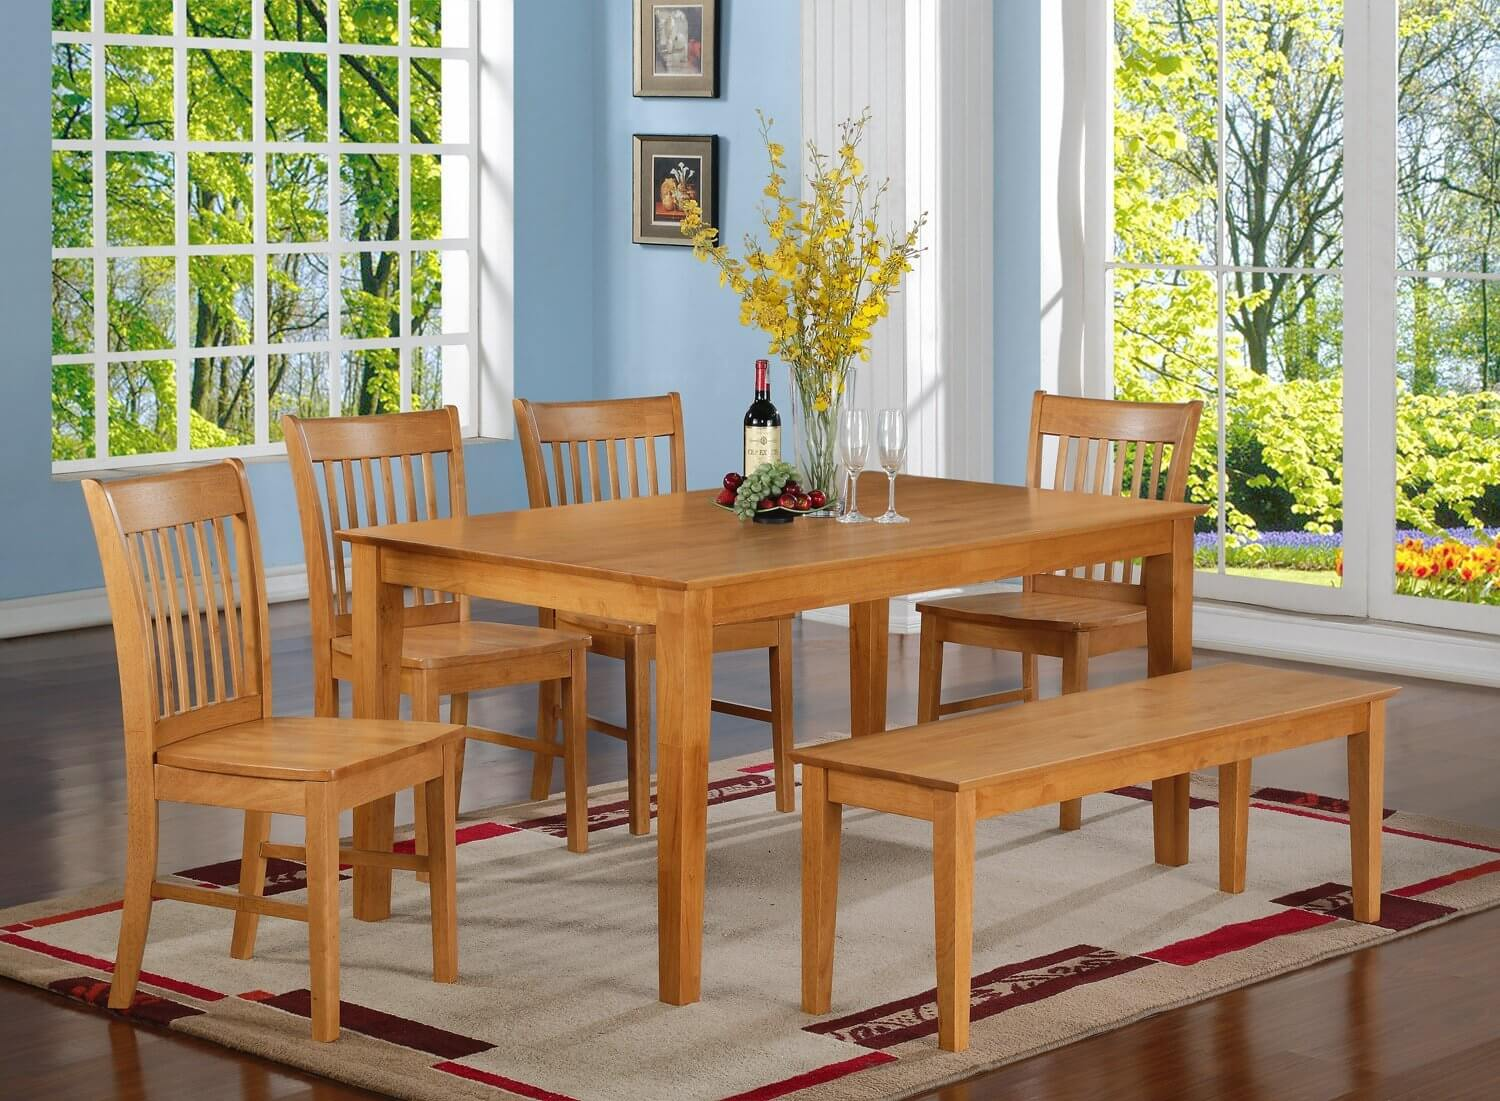 Oak Finish Six Piece Bench Style Dining Room Set With Large Rectangle Table Its